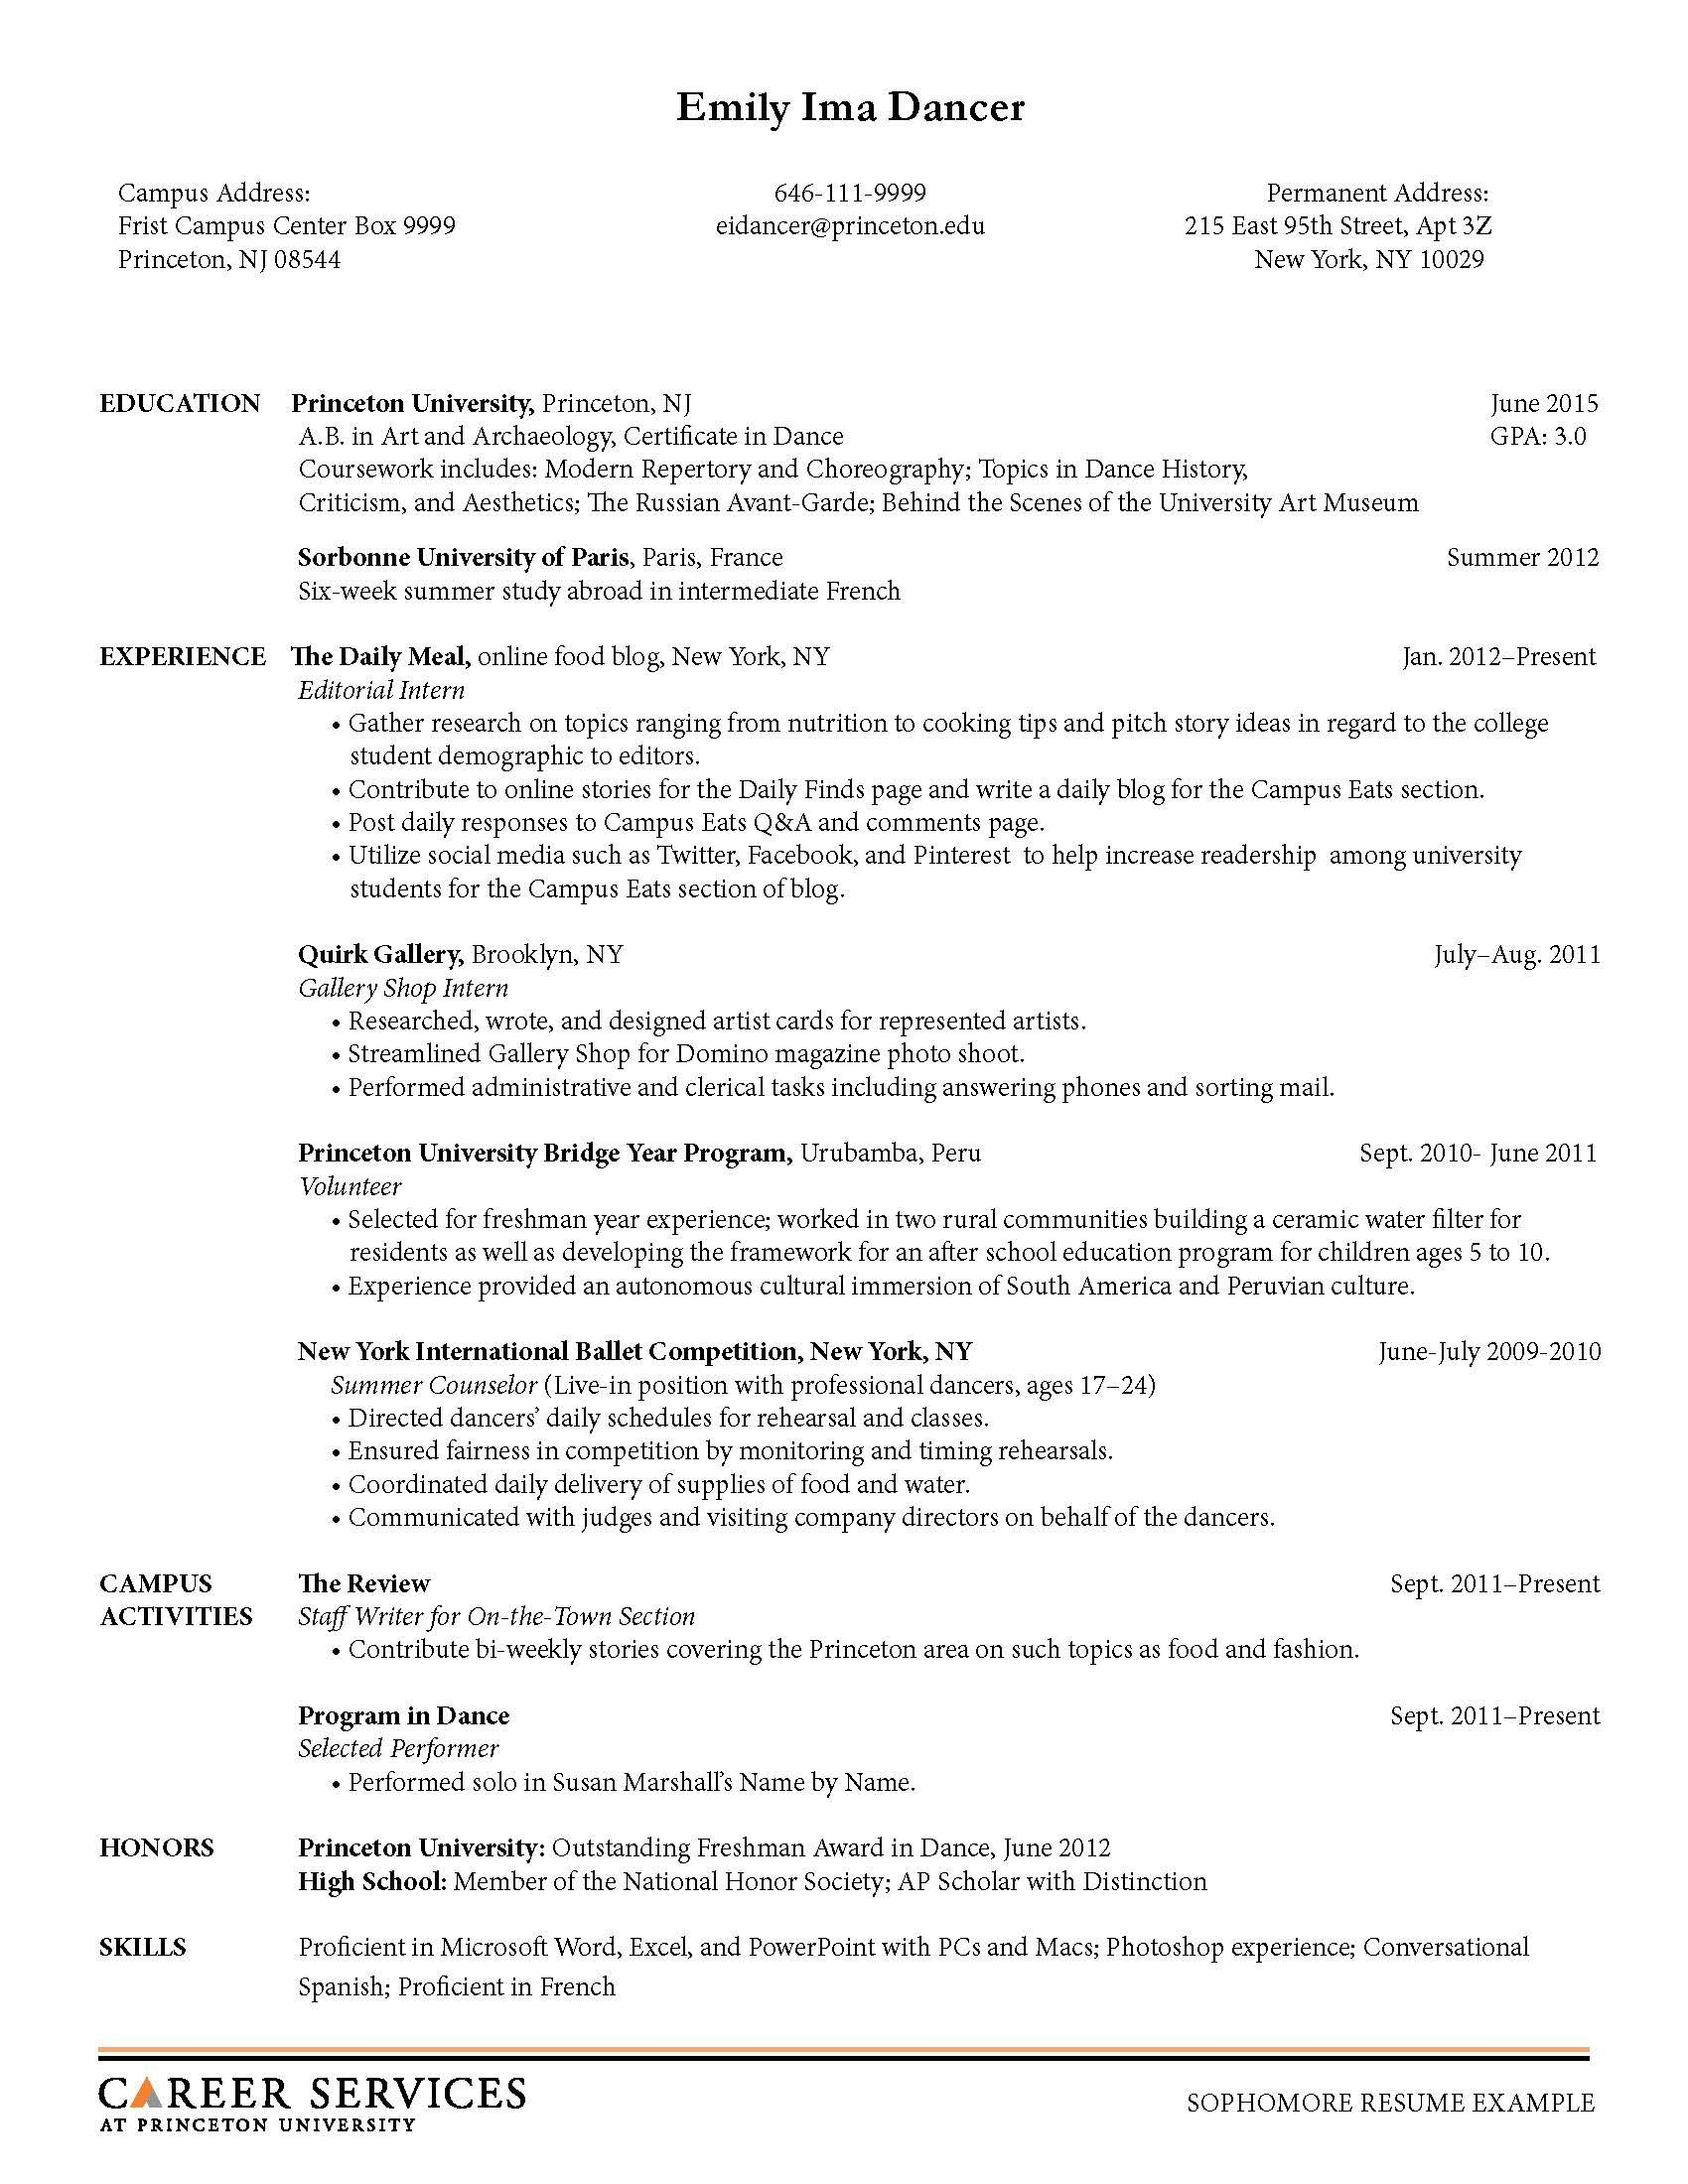 Opposenewapstandardsus  Remarkable Sample Resume Resume And Career On Pinterest With Outstanding Resume And Cover Letter Tips Besides Make A Free Resume And Download For Free Furthermore Secretary Skills Resume With Amusing Software Testing Resume Also Fast Food Cashier Resume In Addition Skills Listed On Resume And What Is A Scannable Resume As Well As How To Write A Dance Resume Additionally Director Of Nursing Resume From Pinterestcom With Opposenewapstandardsus  Outstanding Sample Resume Resume And Career On Pinterest With Amusing Resume And Cover Letter Tips Besides Make A Free Resume And Download For Free Furthermore Secretary Skills Resume And Remarkable Software Testing Resume Also Fast Food Cashier Resume In Addition Skills Listed On Resume From Pinterestcom